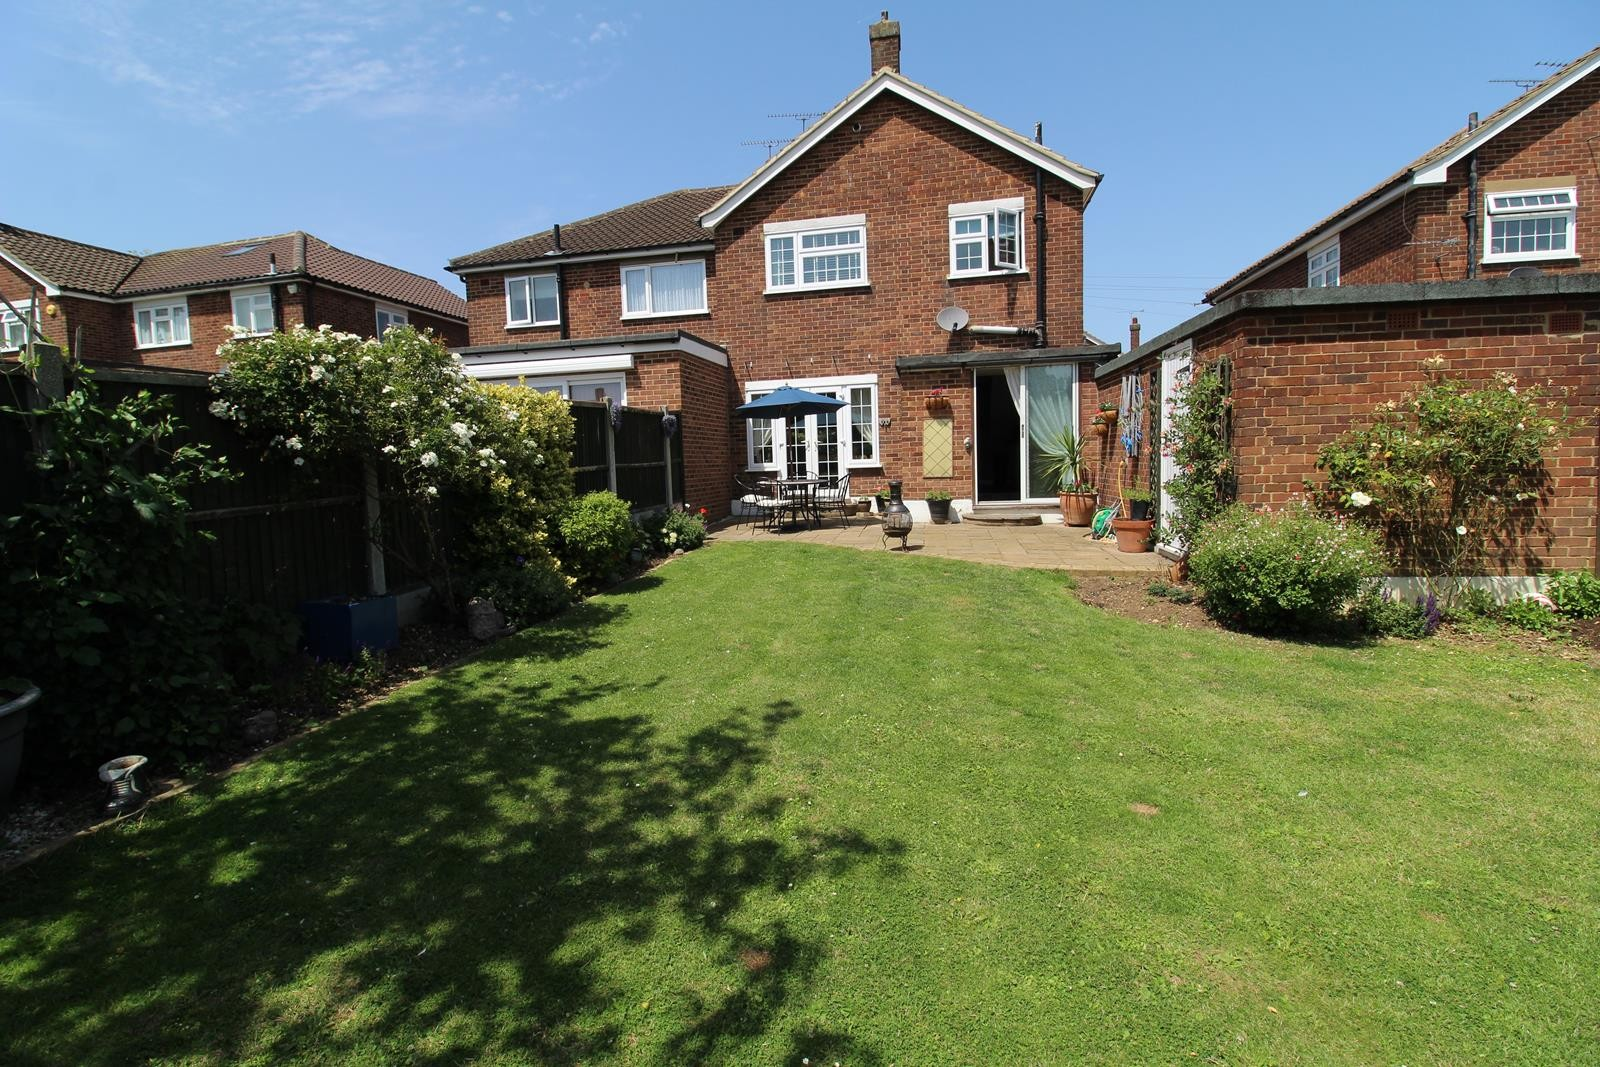 Forth Road, Upminster, Essex, RM14